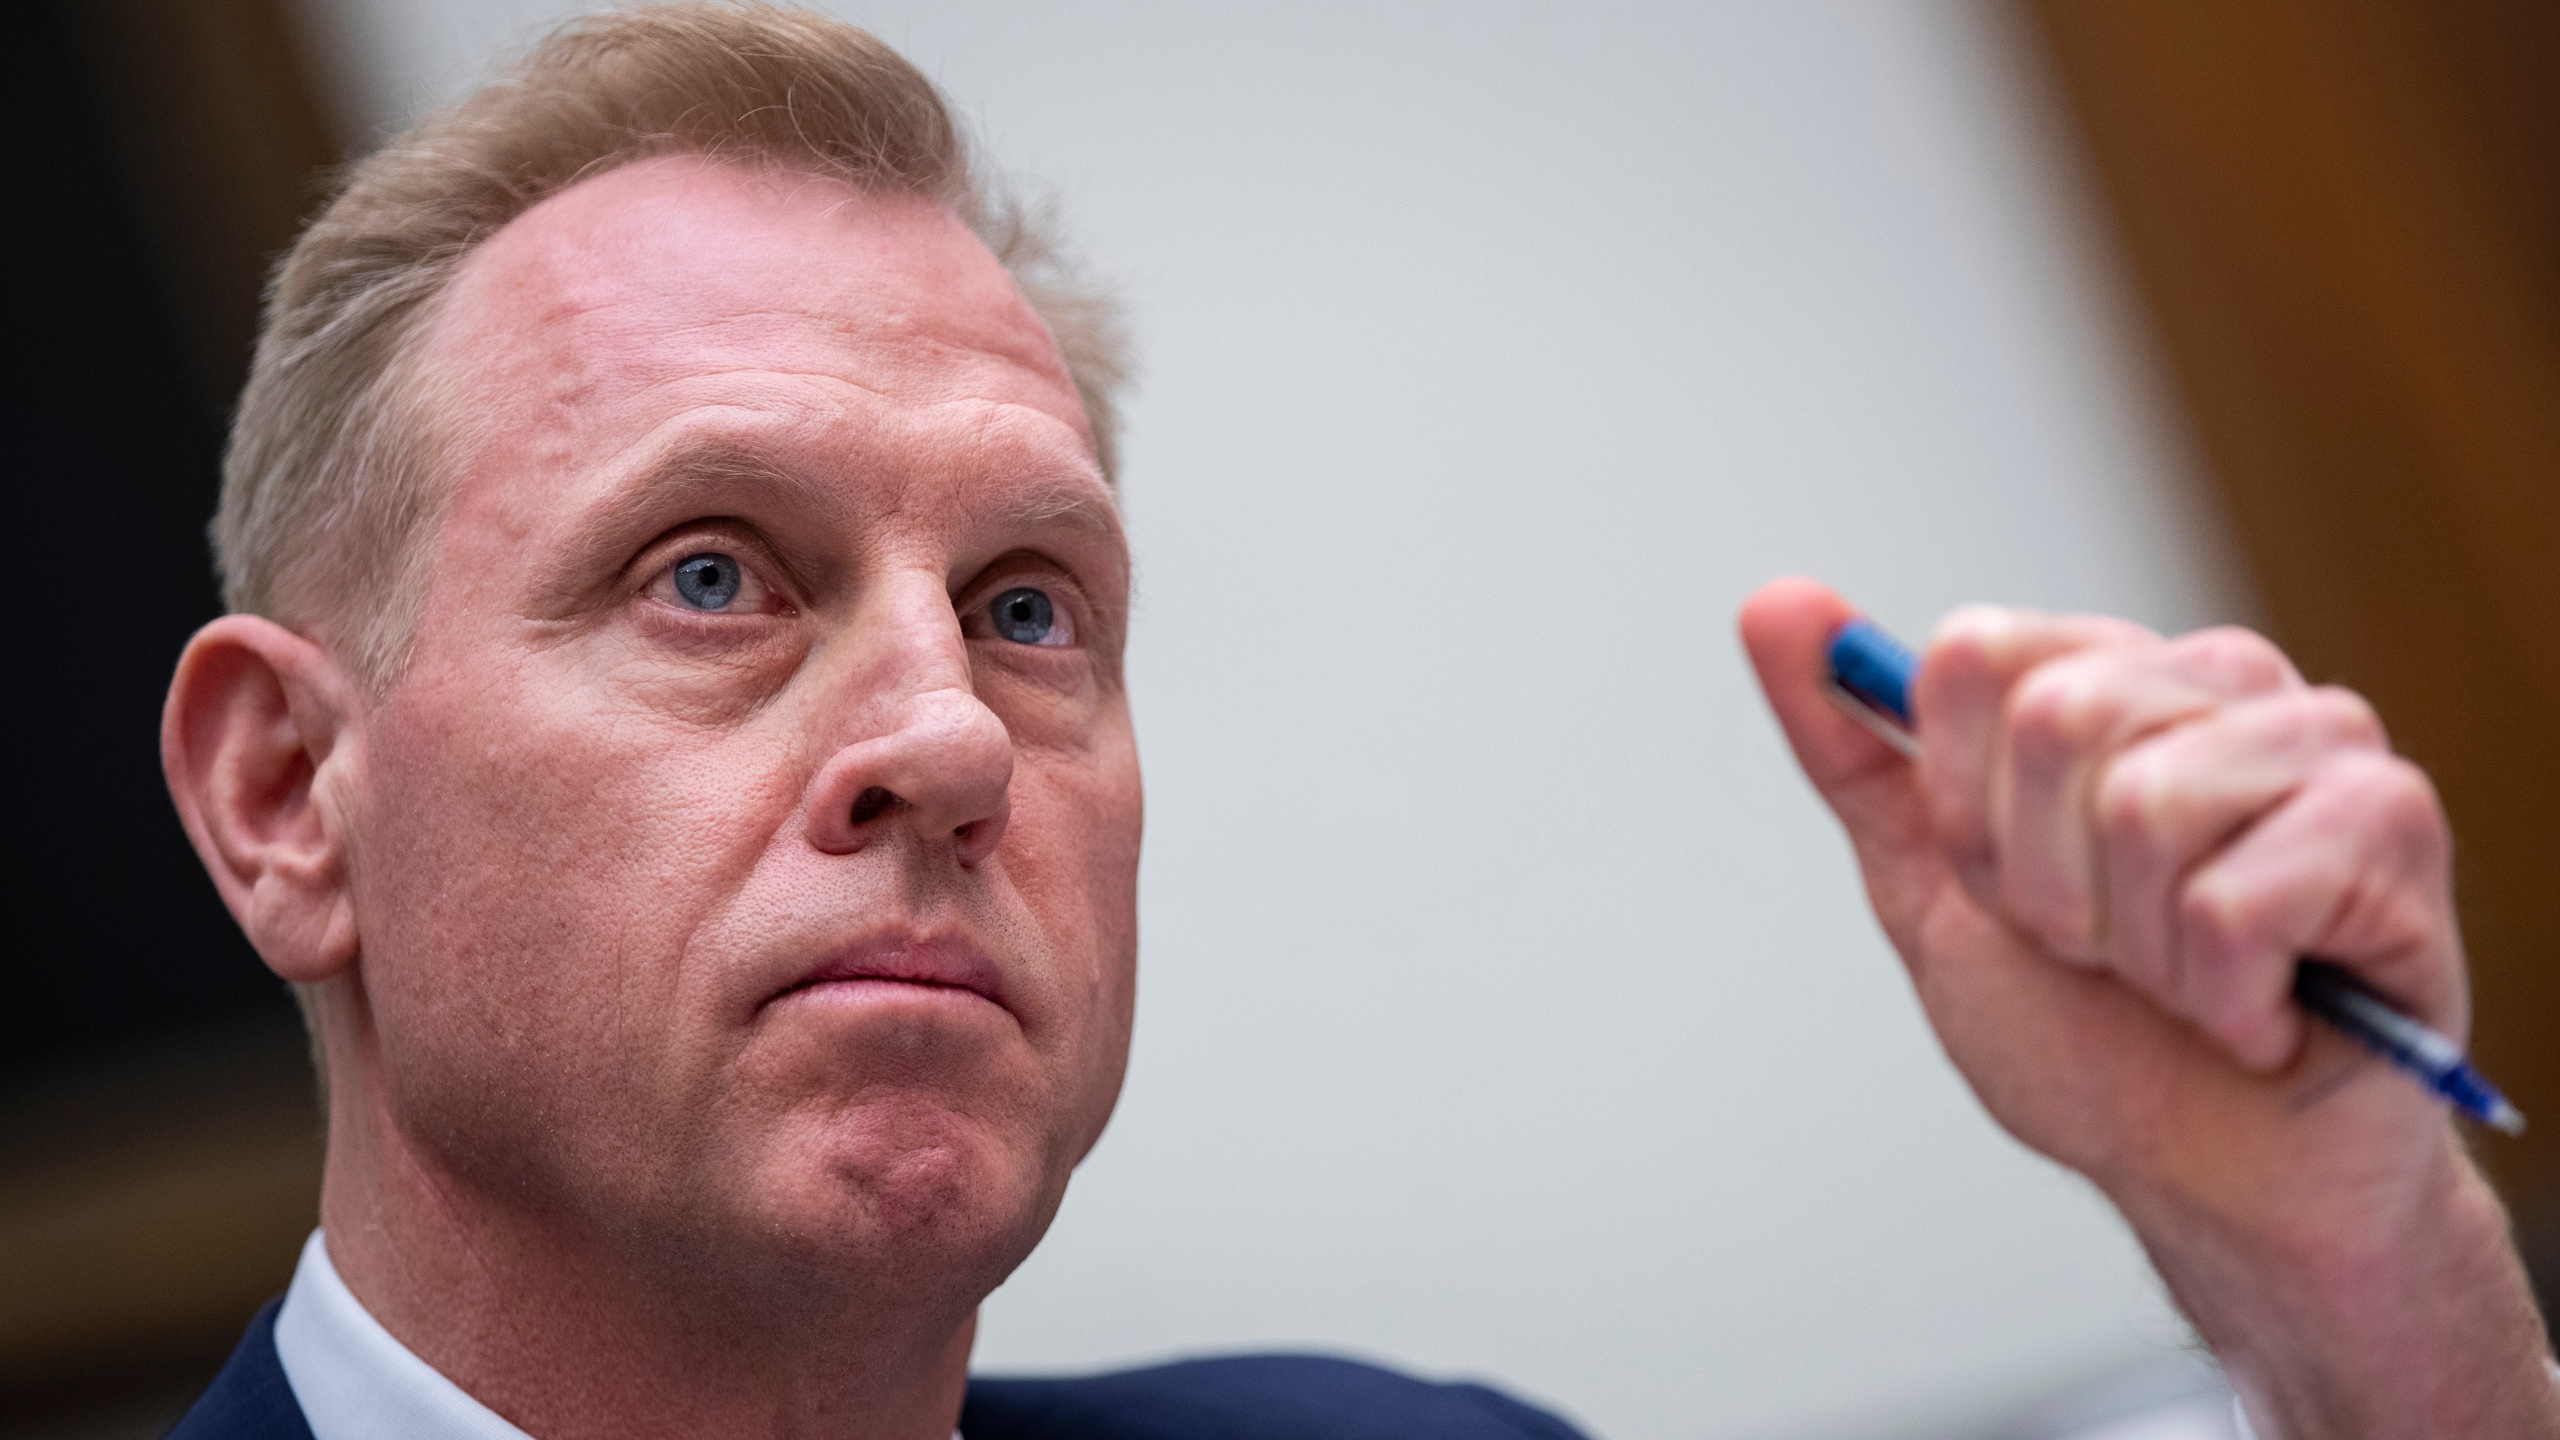 Acting Secretary of Defense Patrick Shanahan testifies during a House Armed Services Committee hearing regarding the fiscal year 2020 National Defense Authorization Budget Request from the Department of Defense on March 26, 2019. (Credit: Drew Angerer/Getty Images)